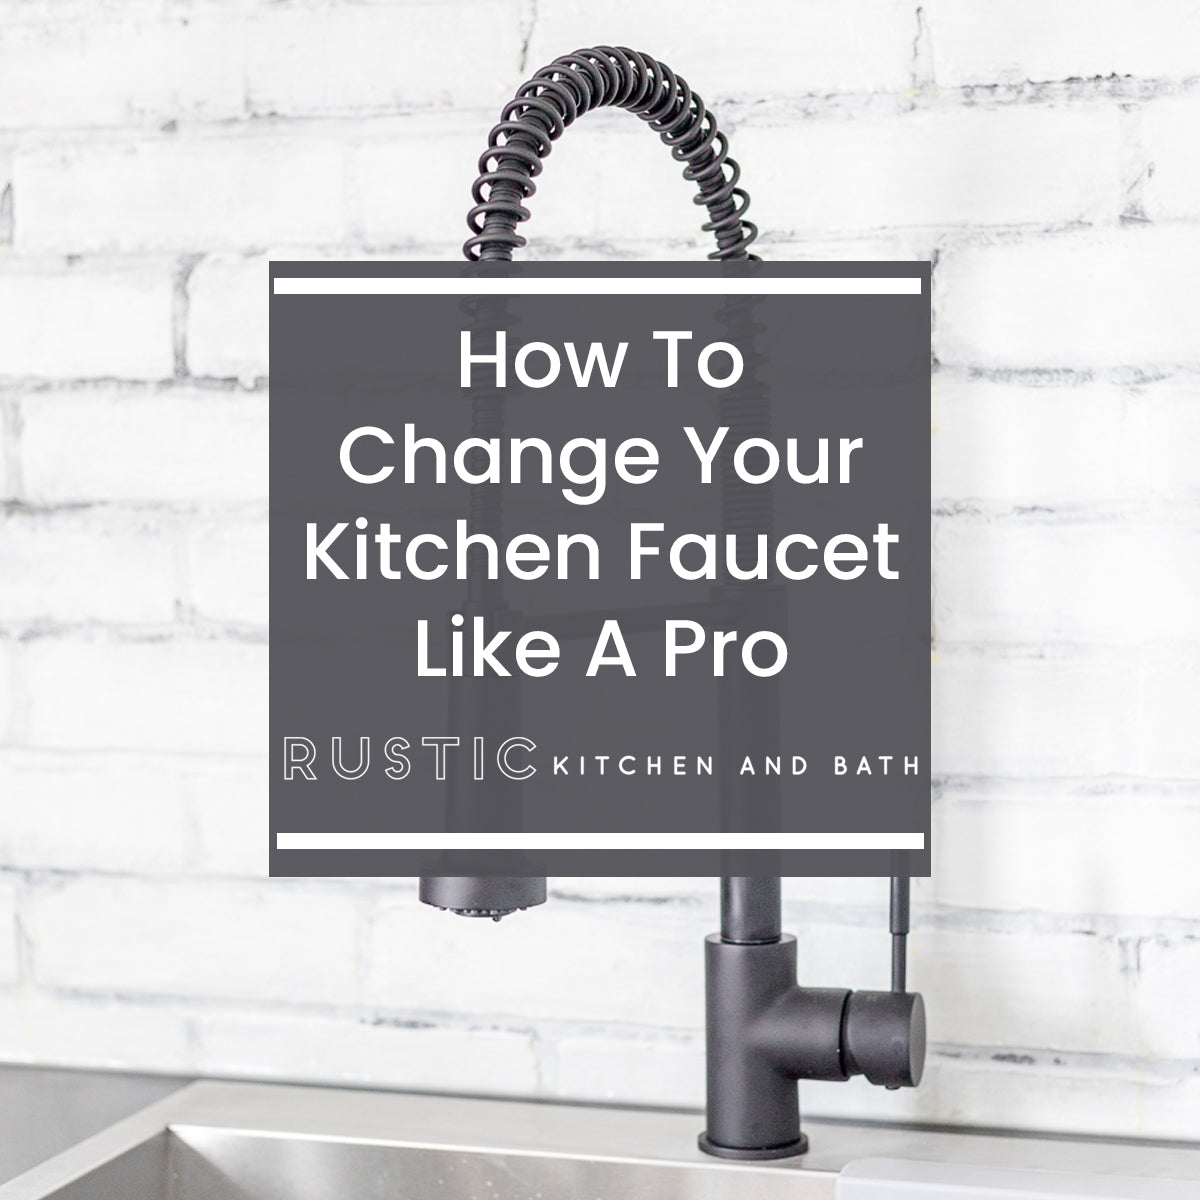 How to Change Your Kitchen Faucet Like a Pro Blog